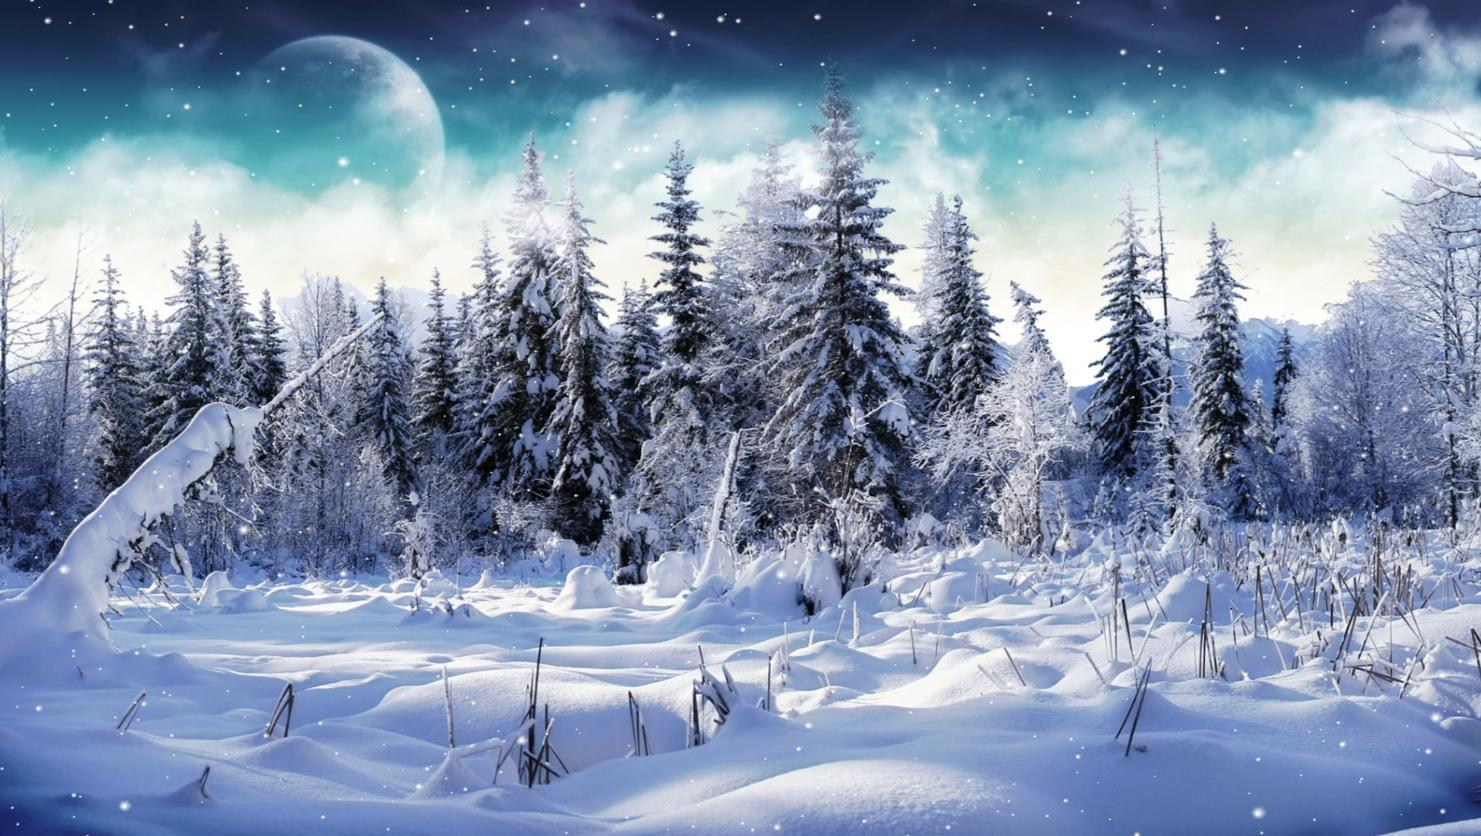 Falling Snow Wallpaper Software Cold Winter Screensaver Animated Wallpape R Torrent Download